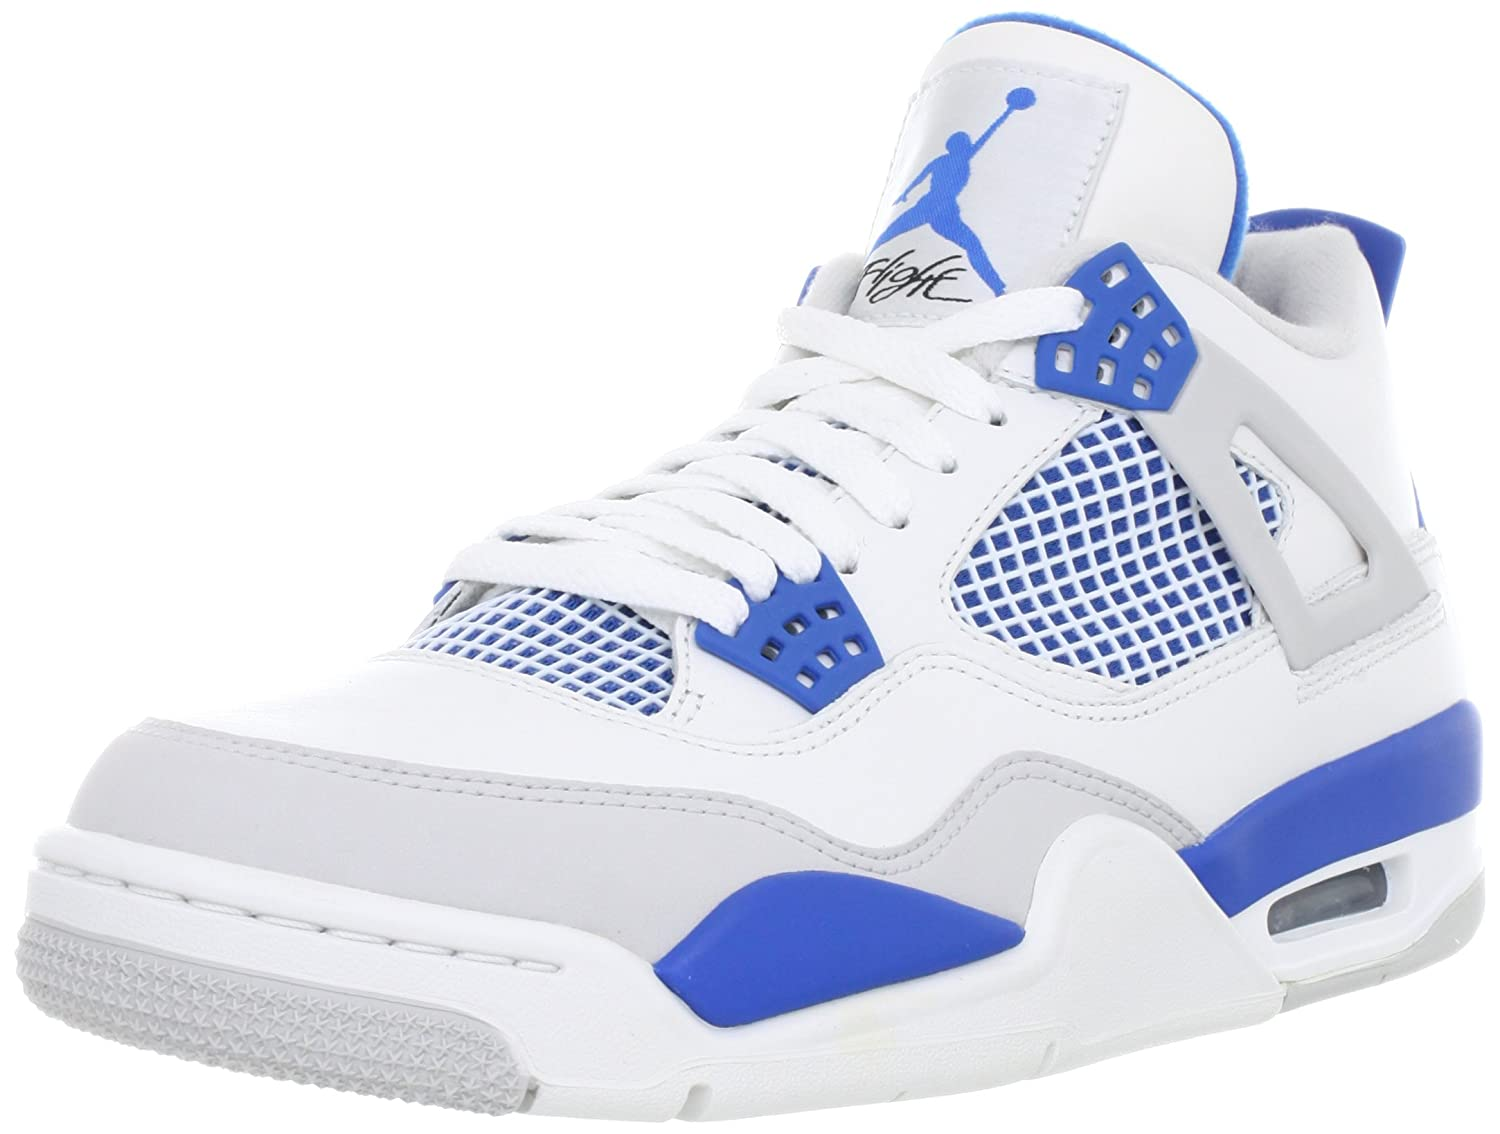 timeless design 20fde f3d0b NIKE Mens Air Jordan 4 Retro Military White/Military Blue Leather